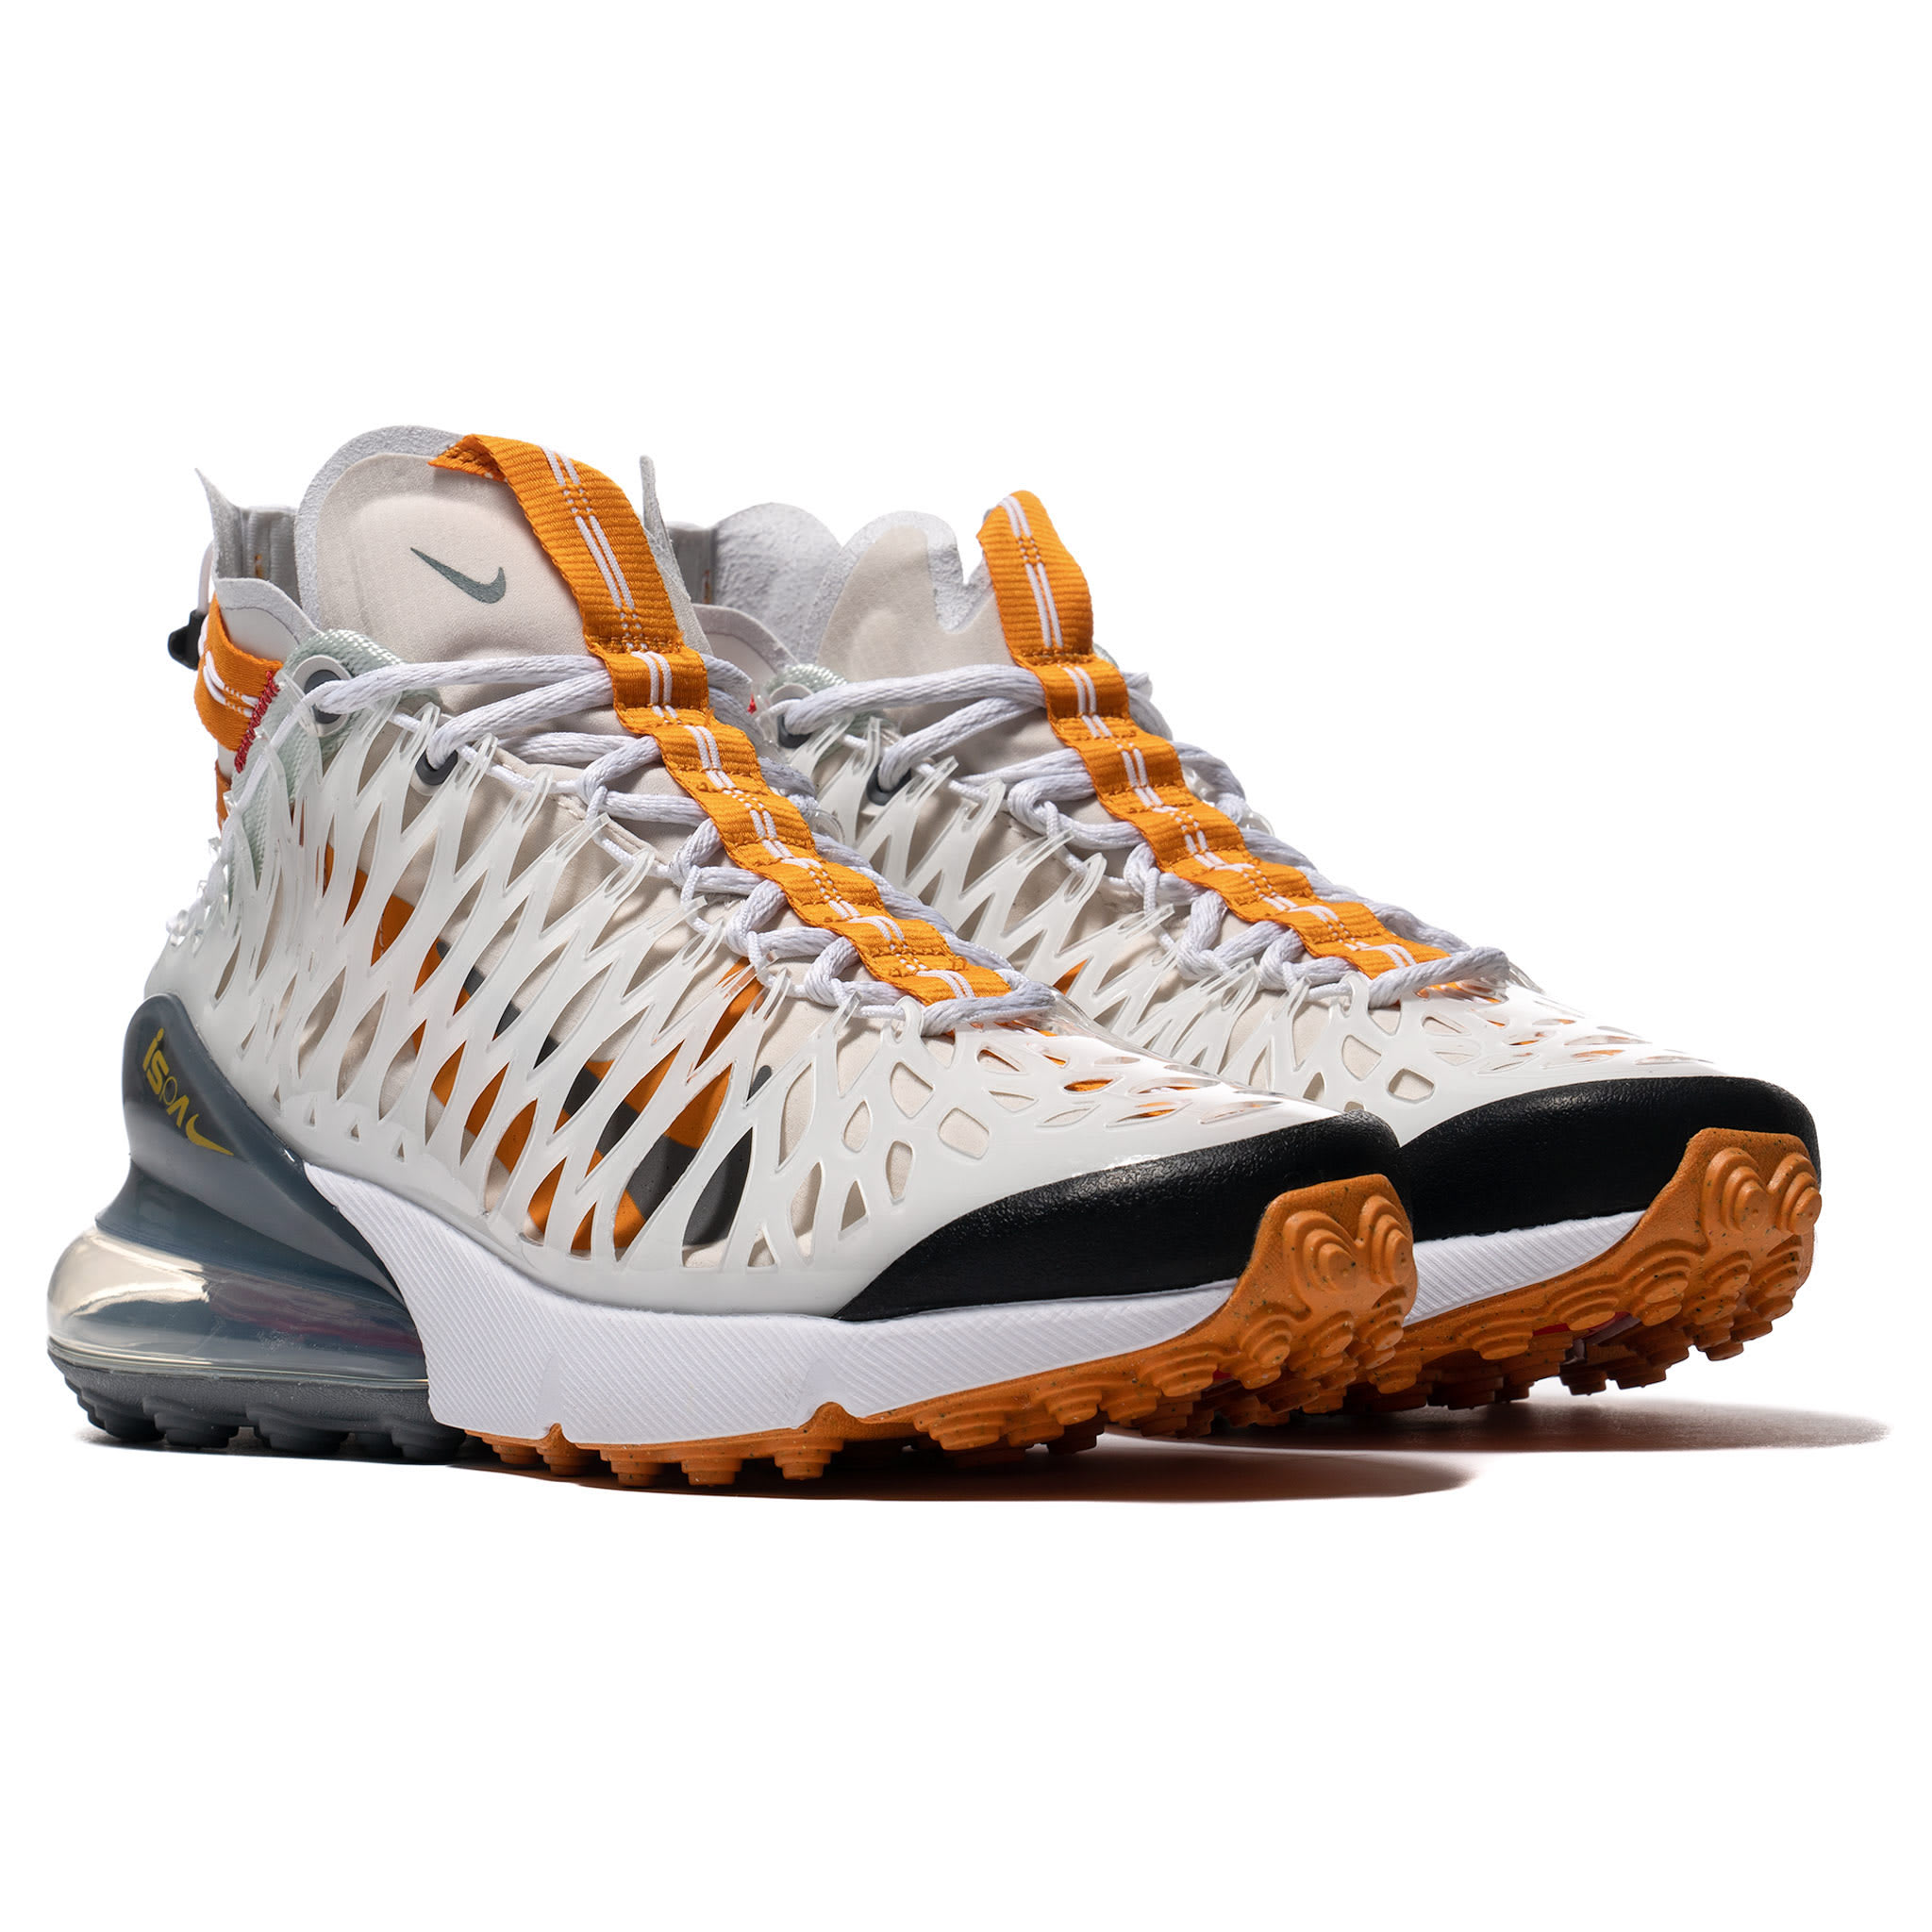 on sale 28d55 76e9c In continuing its ISPA program, Nike released the Air Max 270 ISPA  silhouette last week. Arguably one of Nike's most ambitious and unique  campaigns, ...